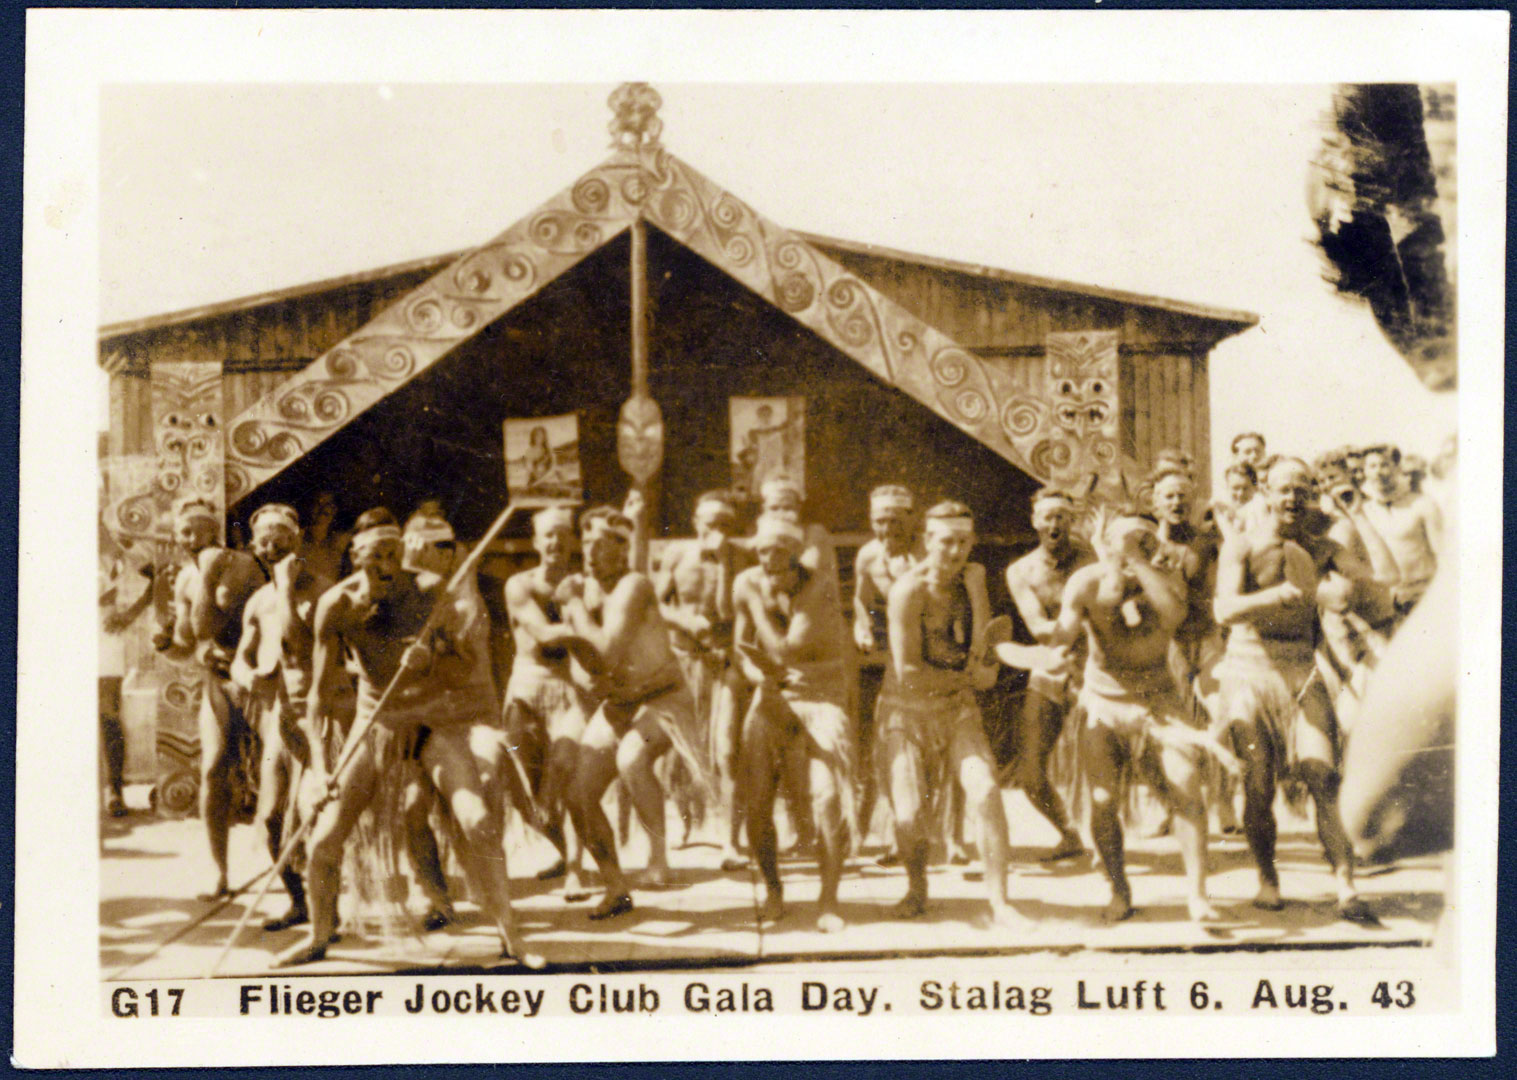 Jockey Club Day at Stalag Luft VI